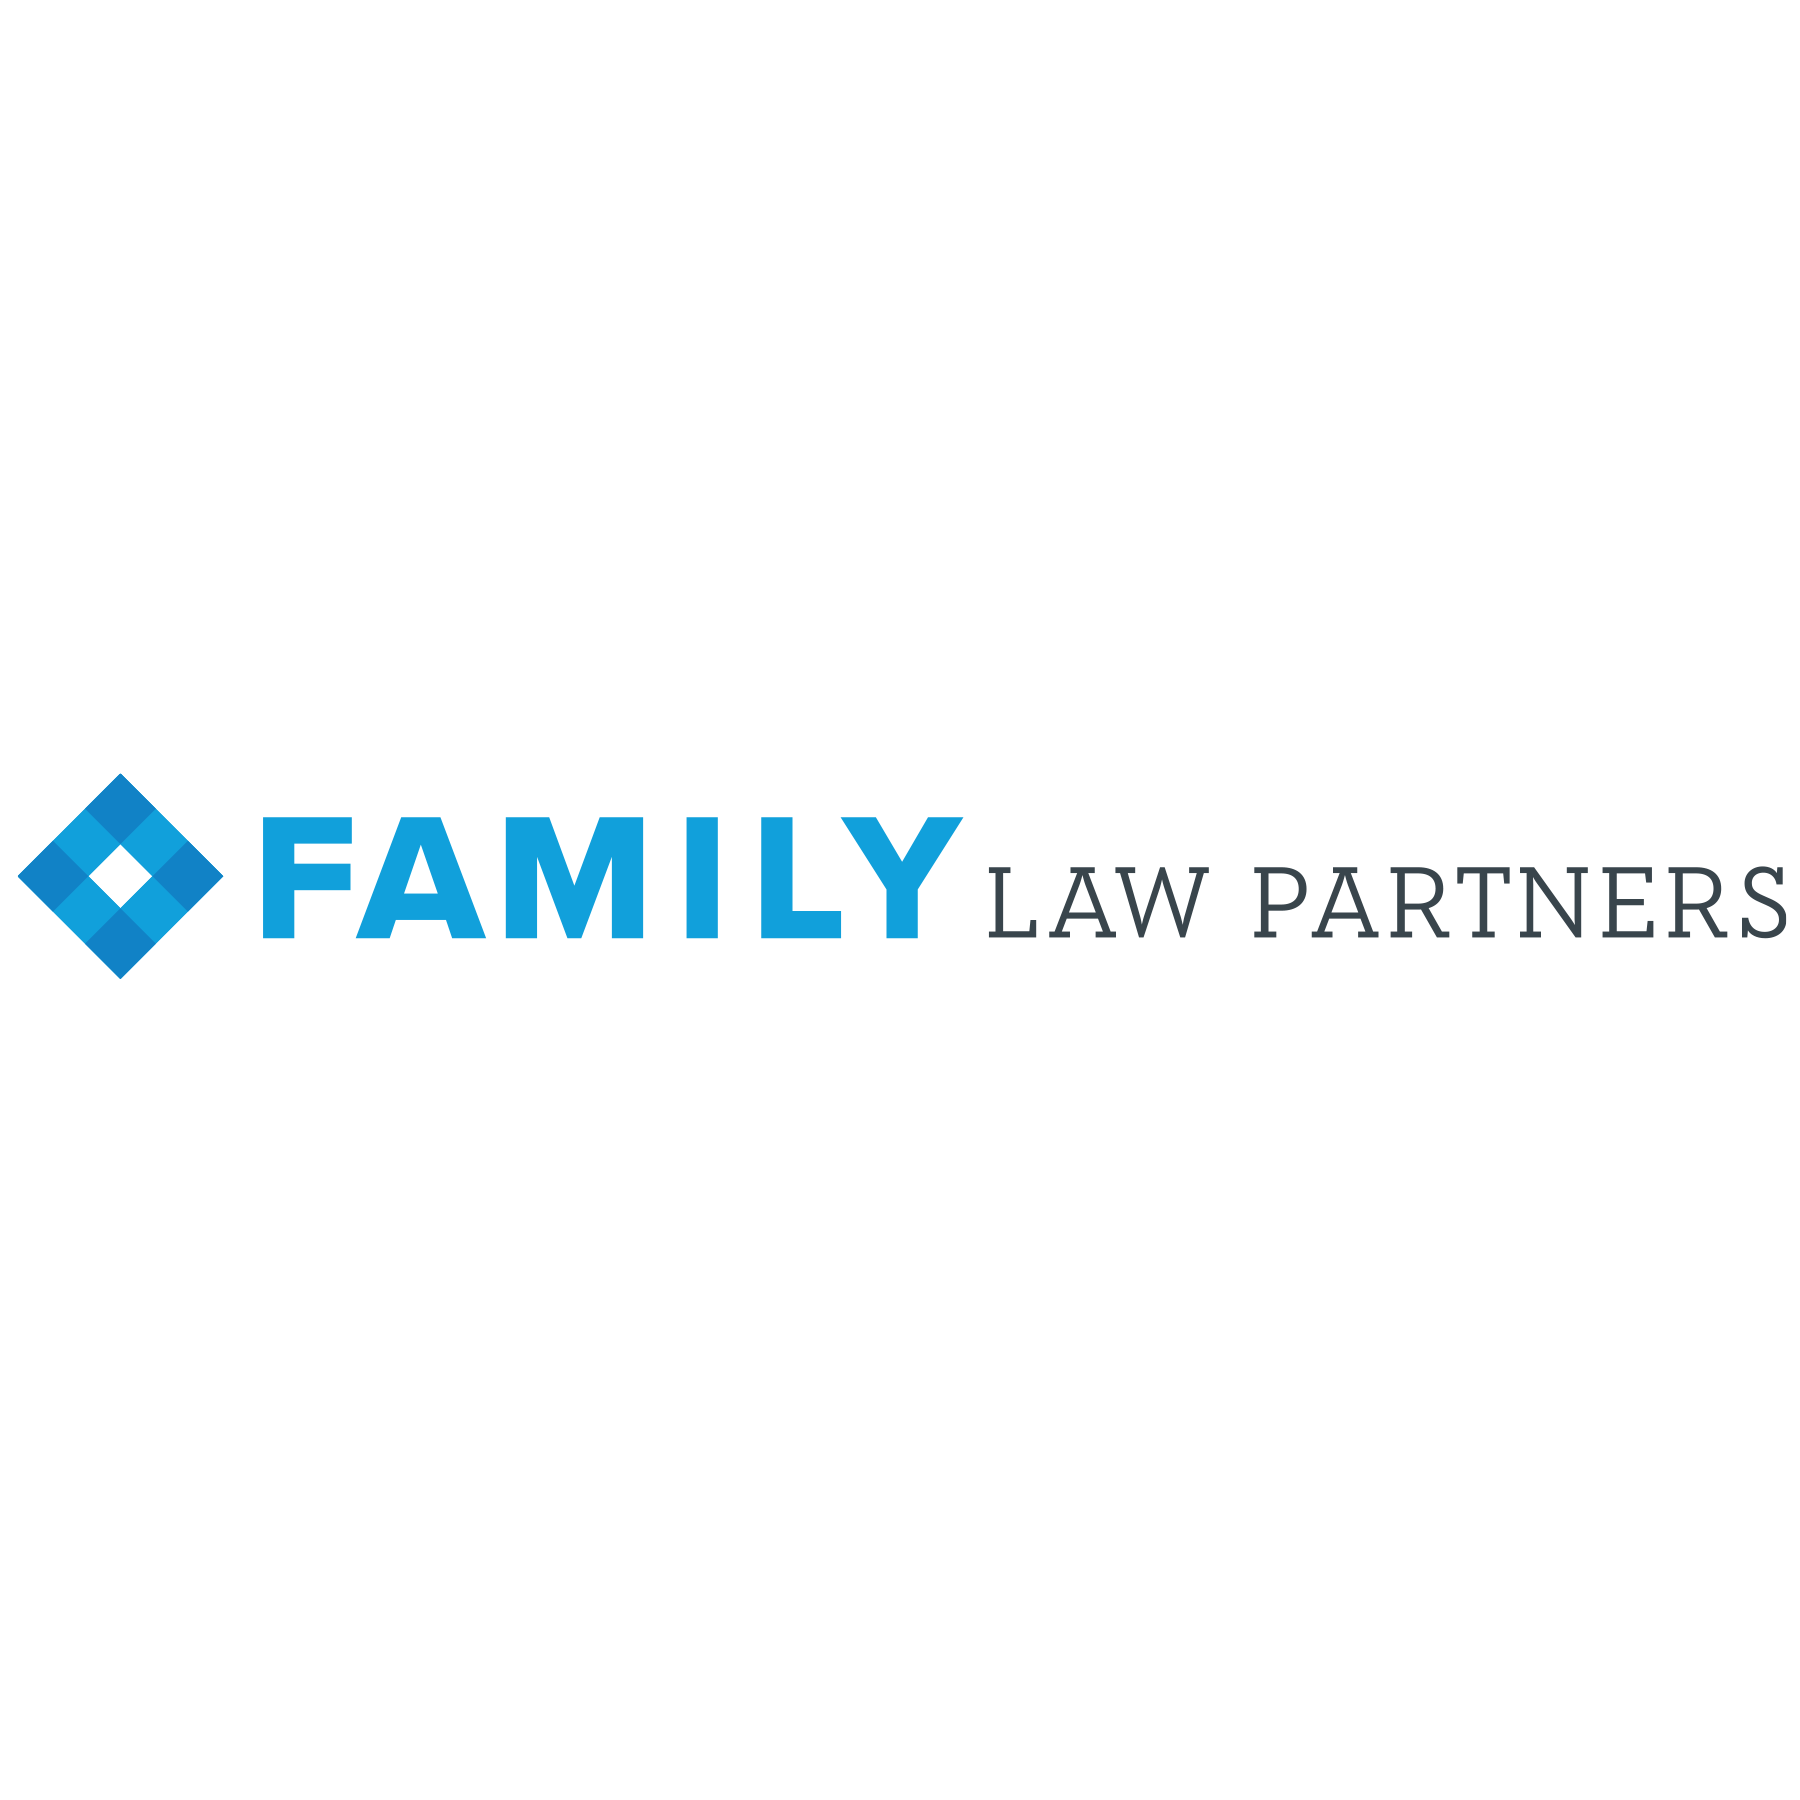 Family Law Partners